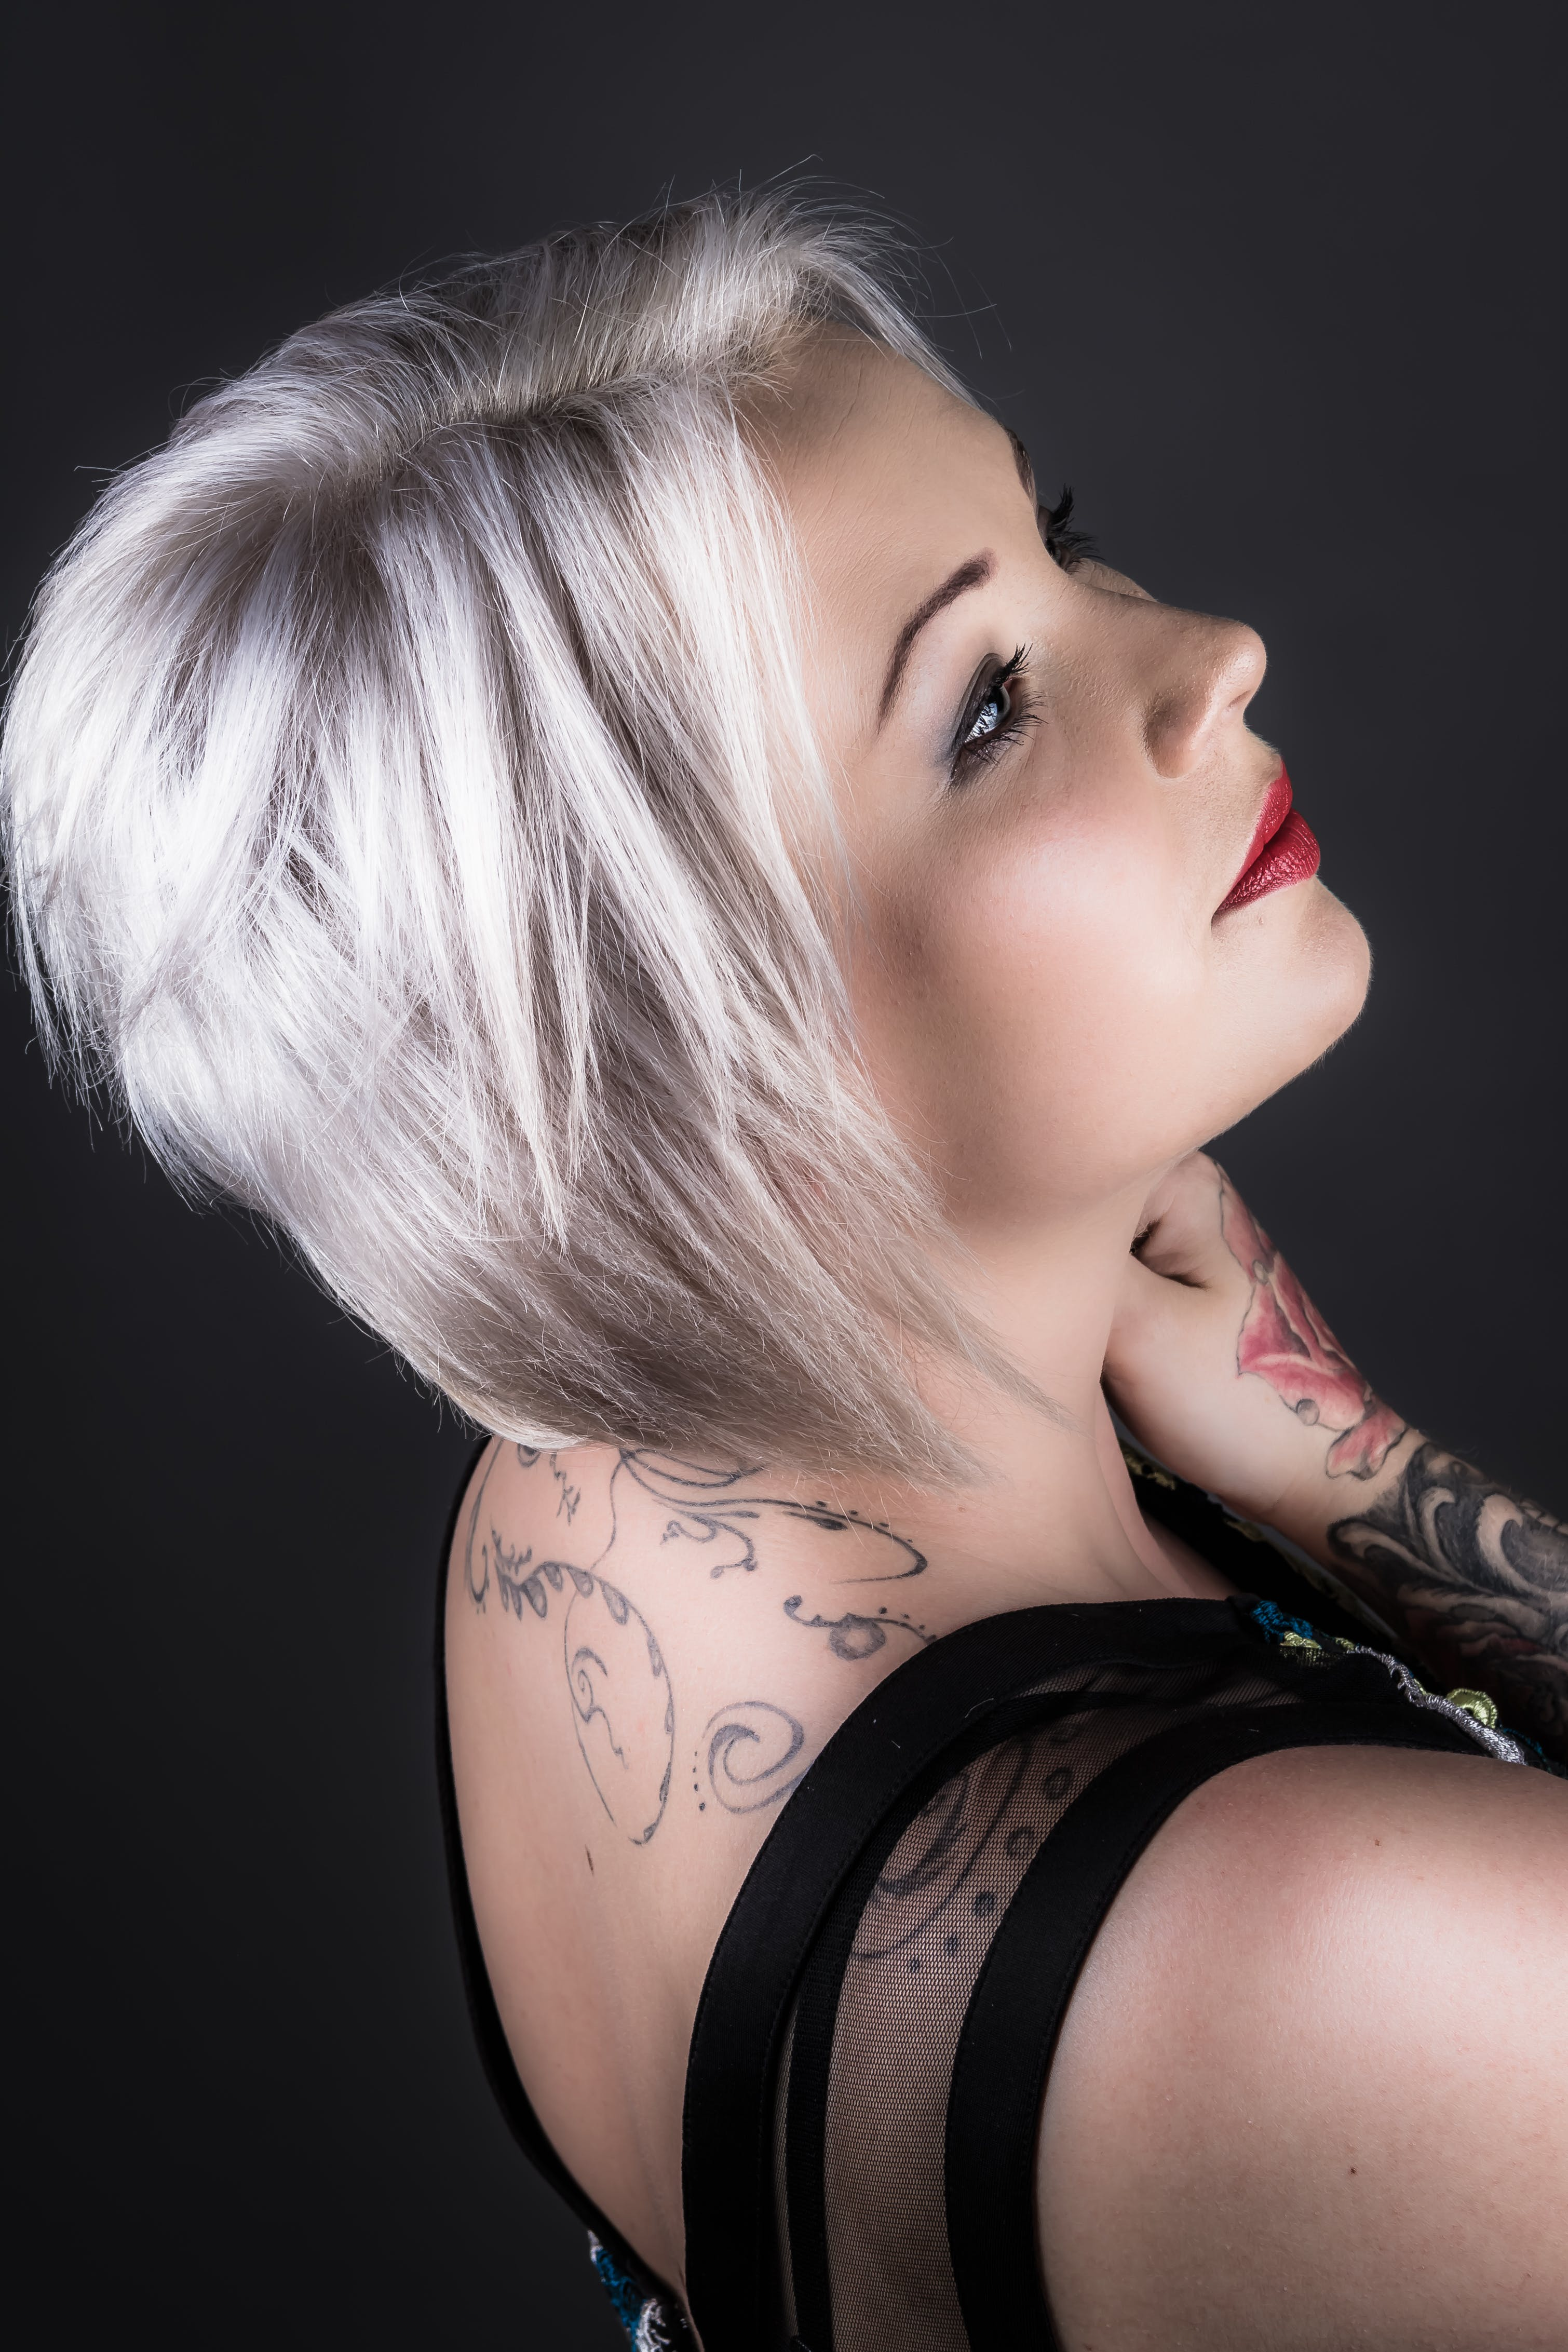 Woman Wearing Black Shirt With Tattoo and Red Lipstick